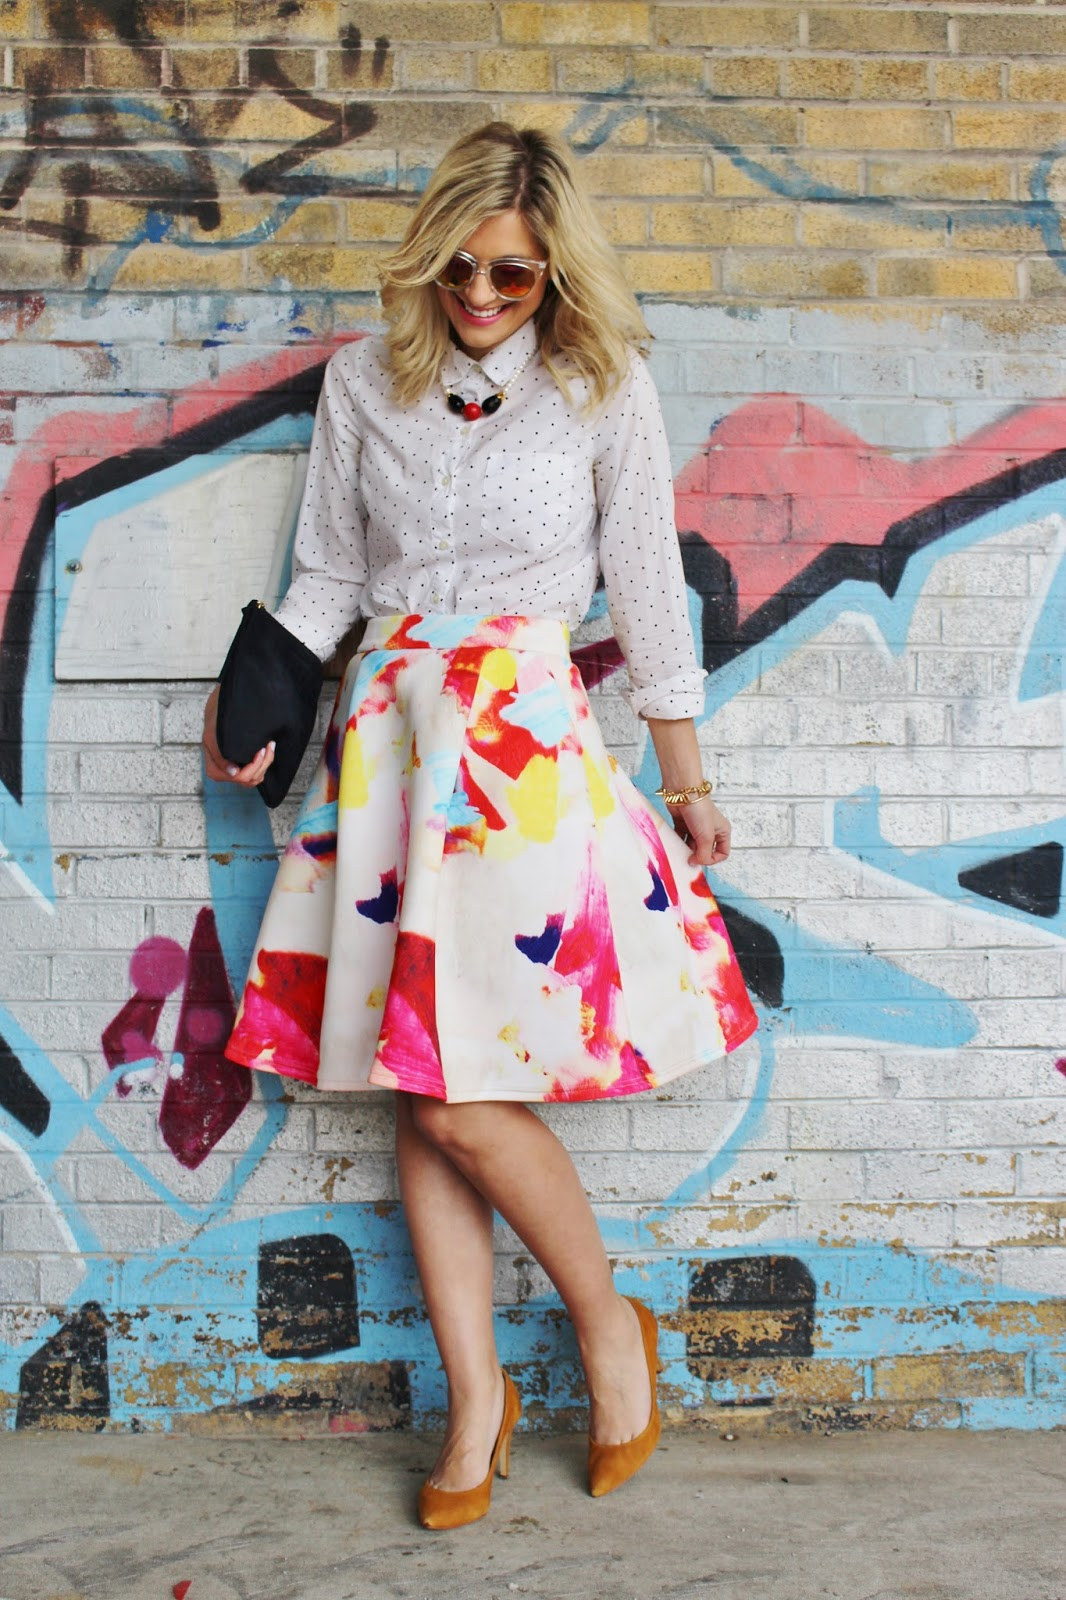 bijuleni - polka dot shirt and colourful skirt